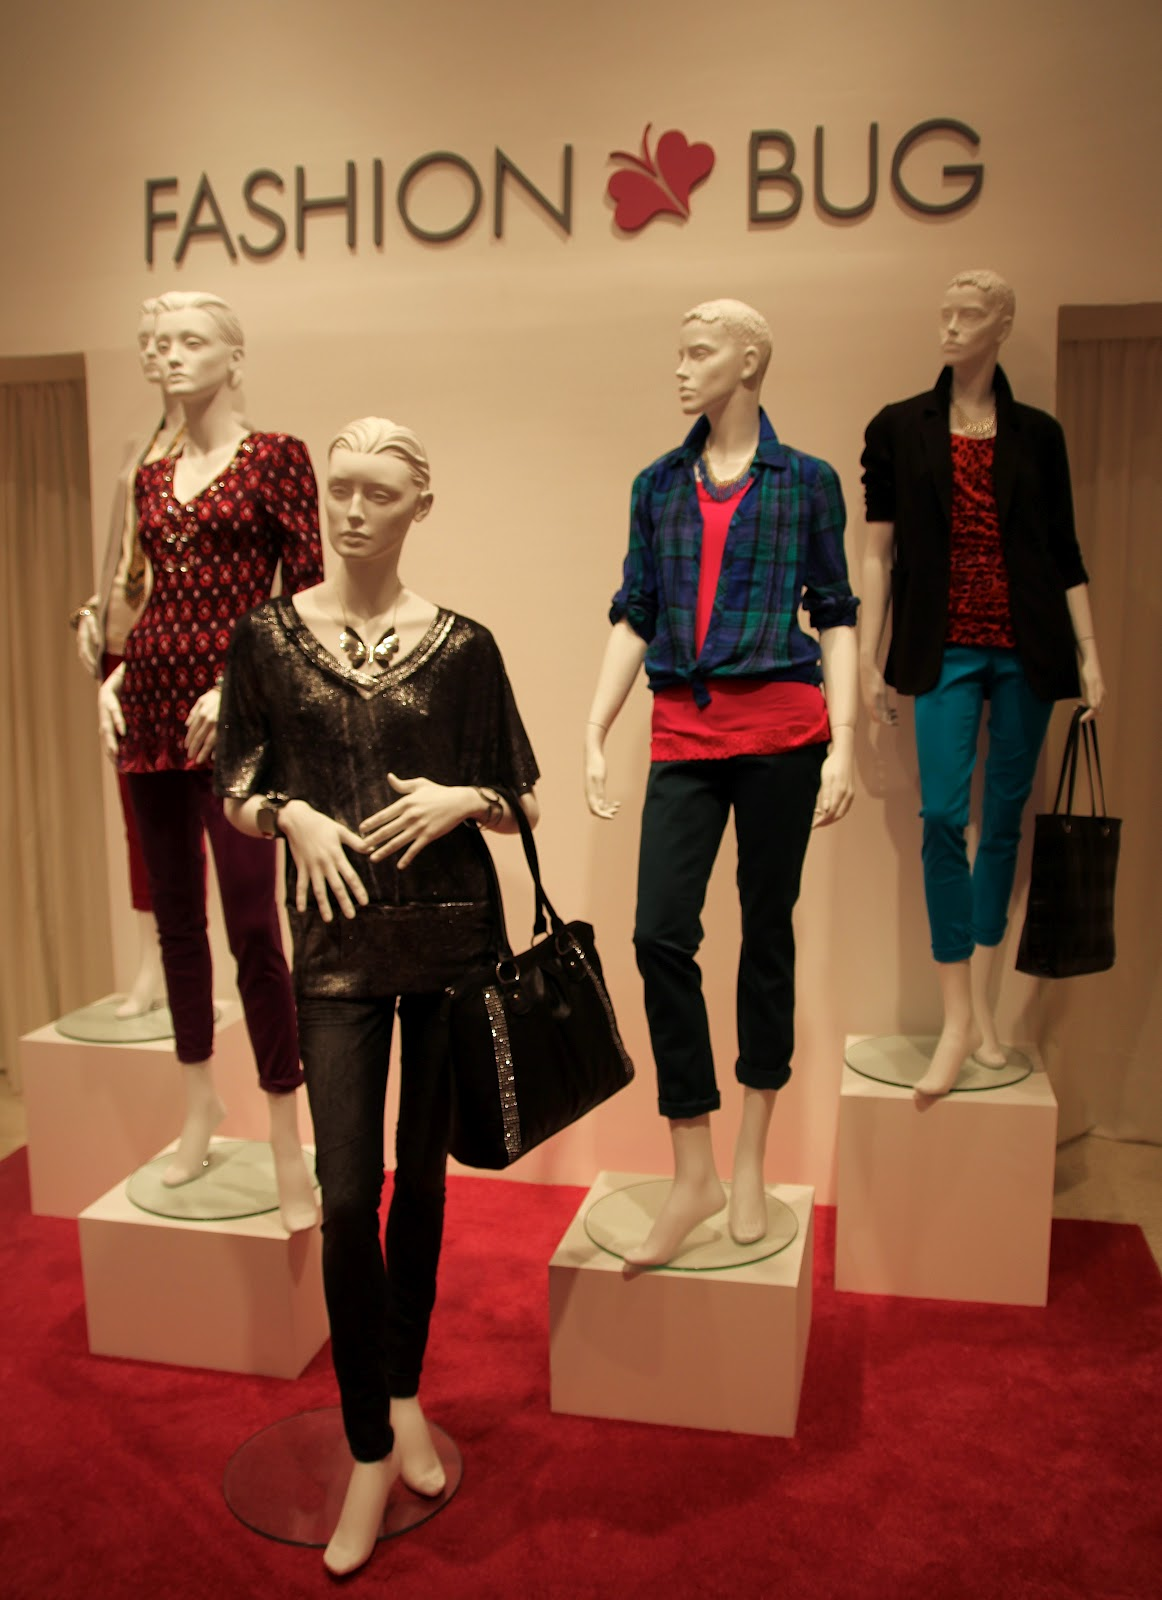 Charming Shoppes - Wikipedia Which fashion bug stores are closing